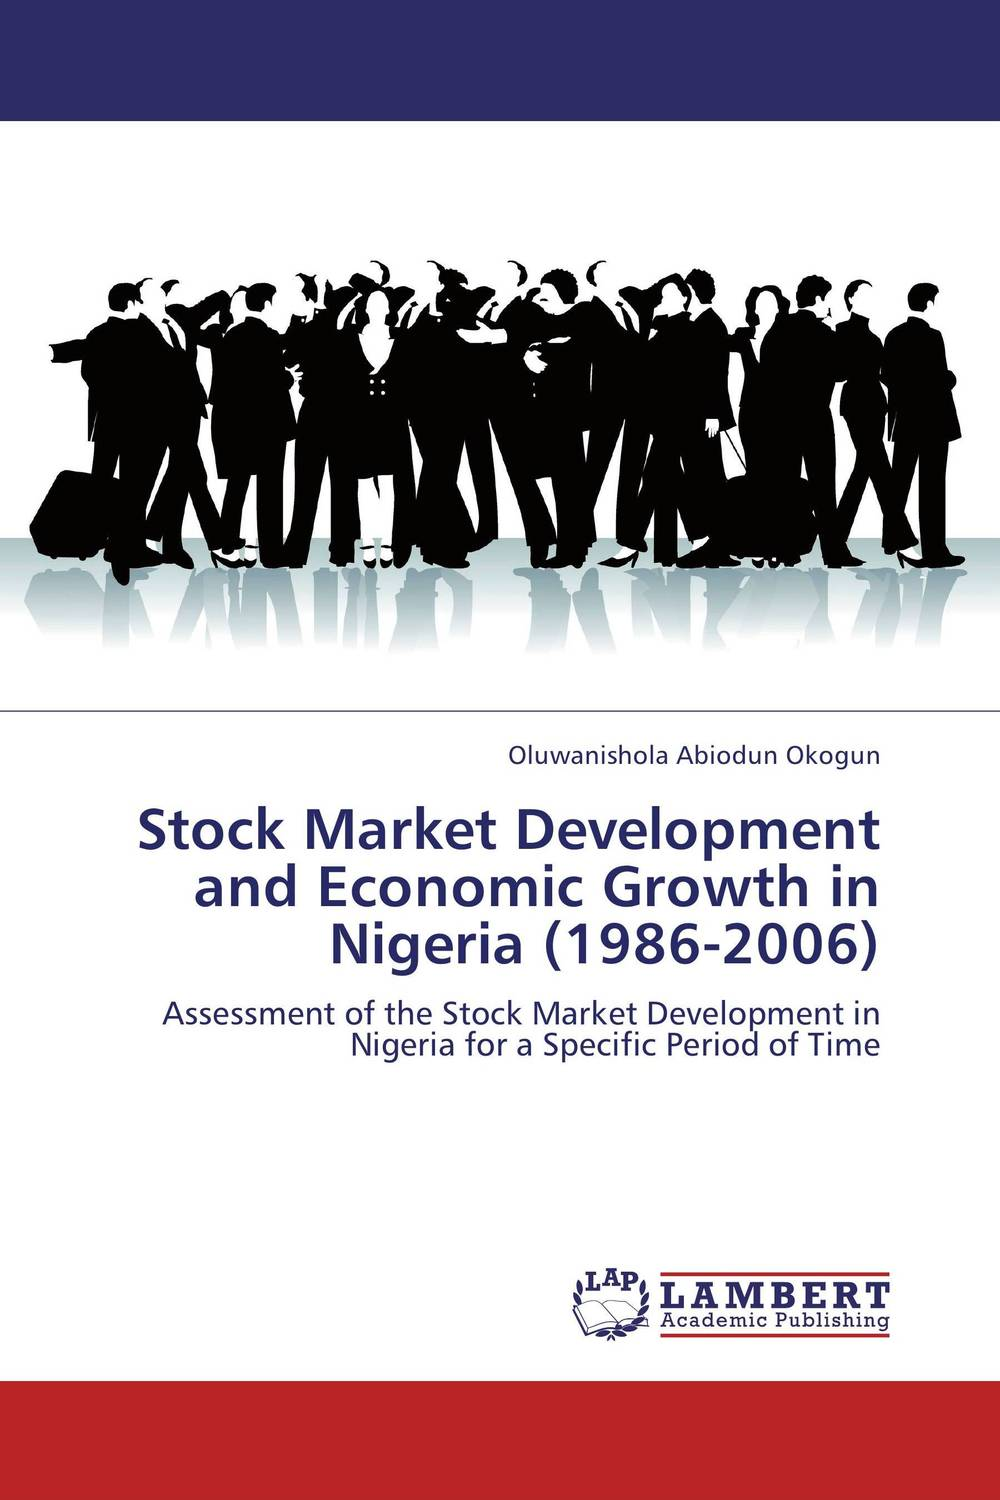 Stock Market Development and Economic Growth in Nigeria (1986-2006) impact of stock market performance indices on economic growth